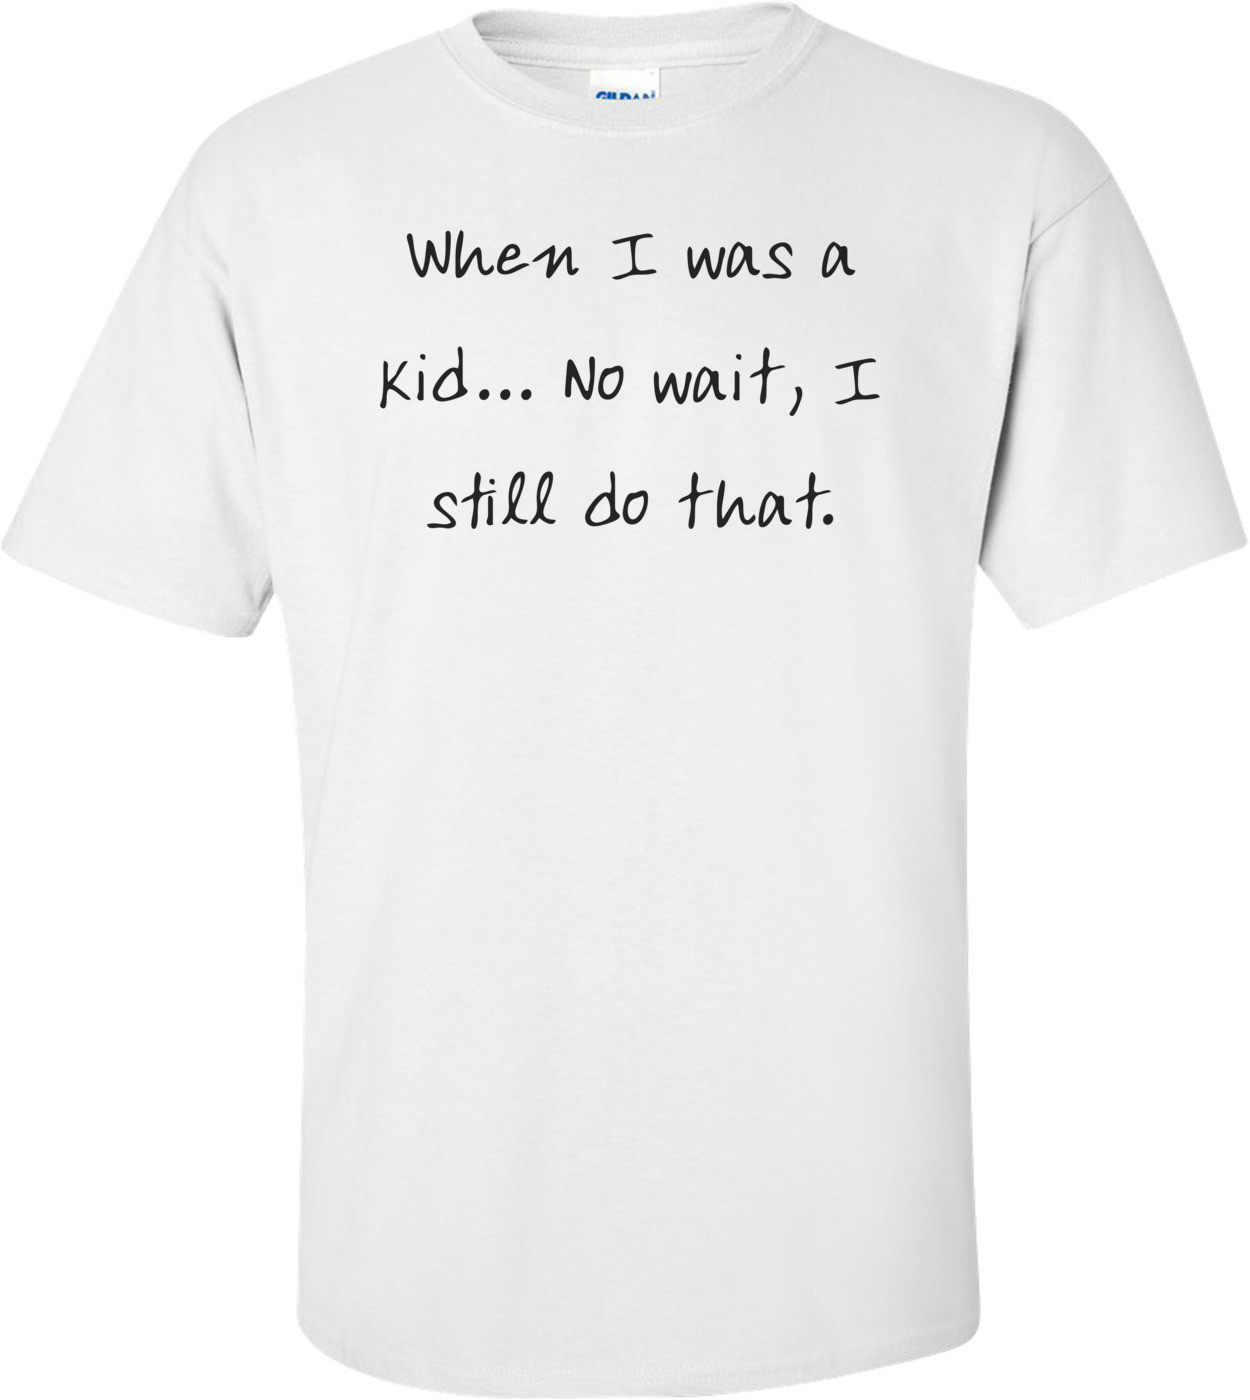 When I was a kid... No wait, I still do that. Shirt